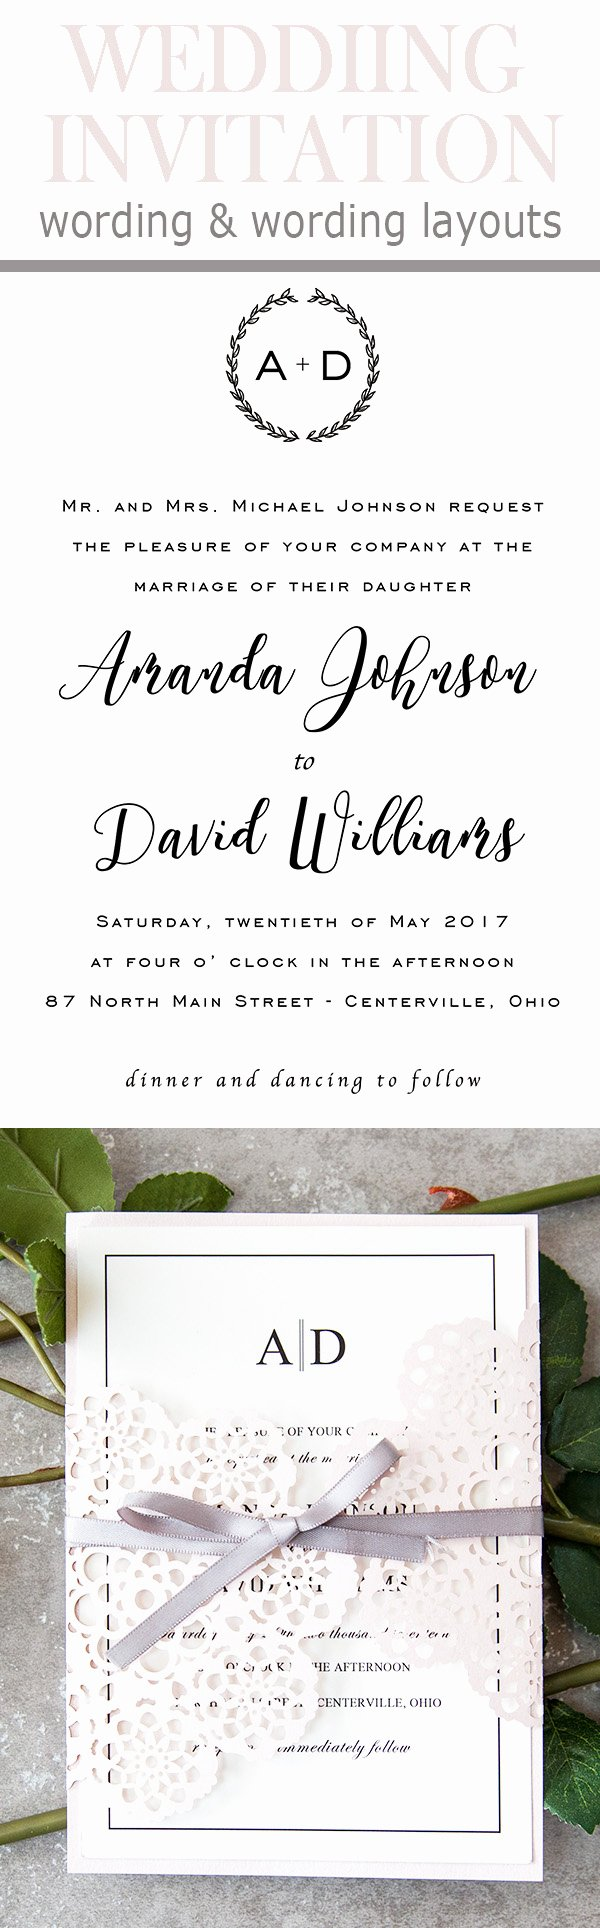 Wedding Invitation Wording Template Inspirational 20 Popular Wedding Invitation Wording & Diy Templates Ideas